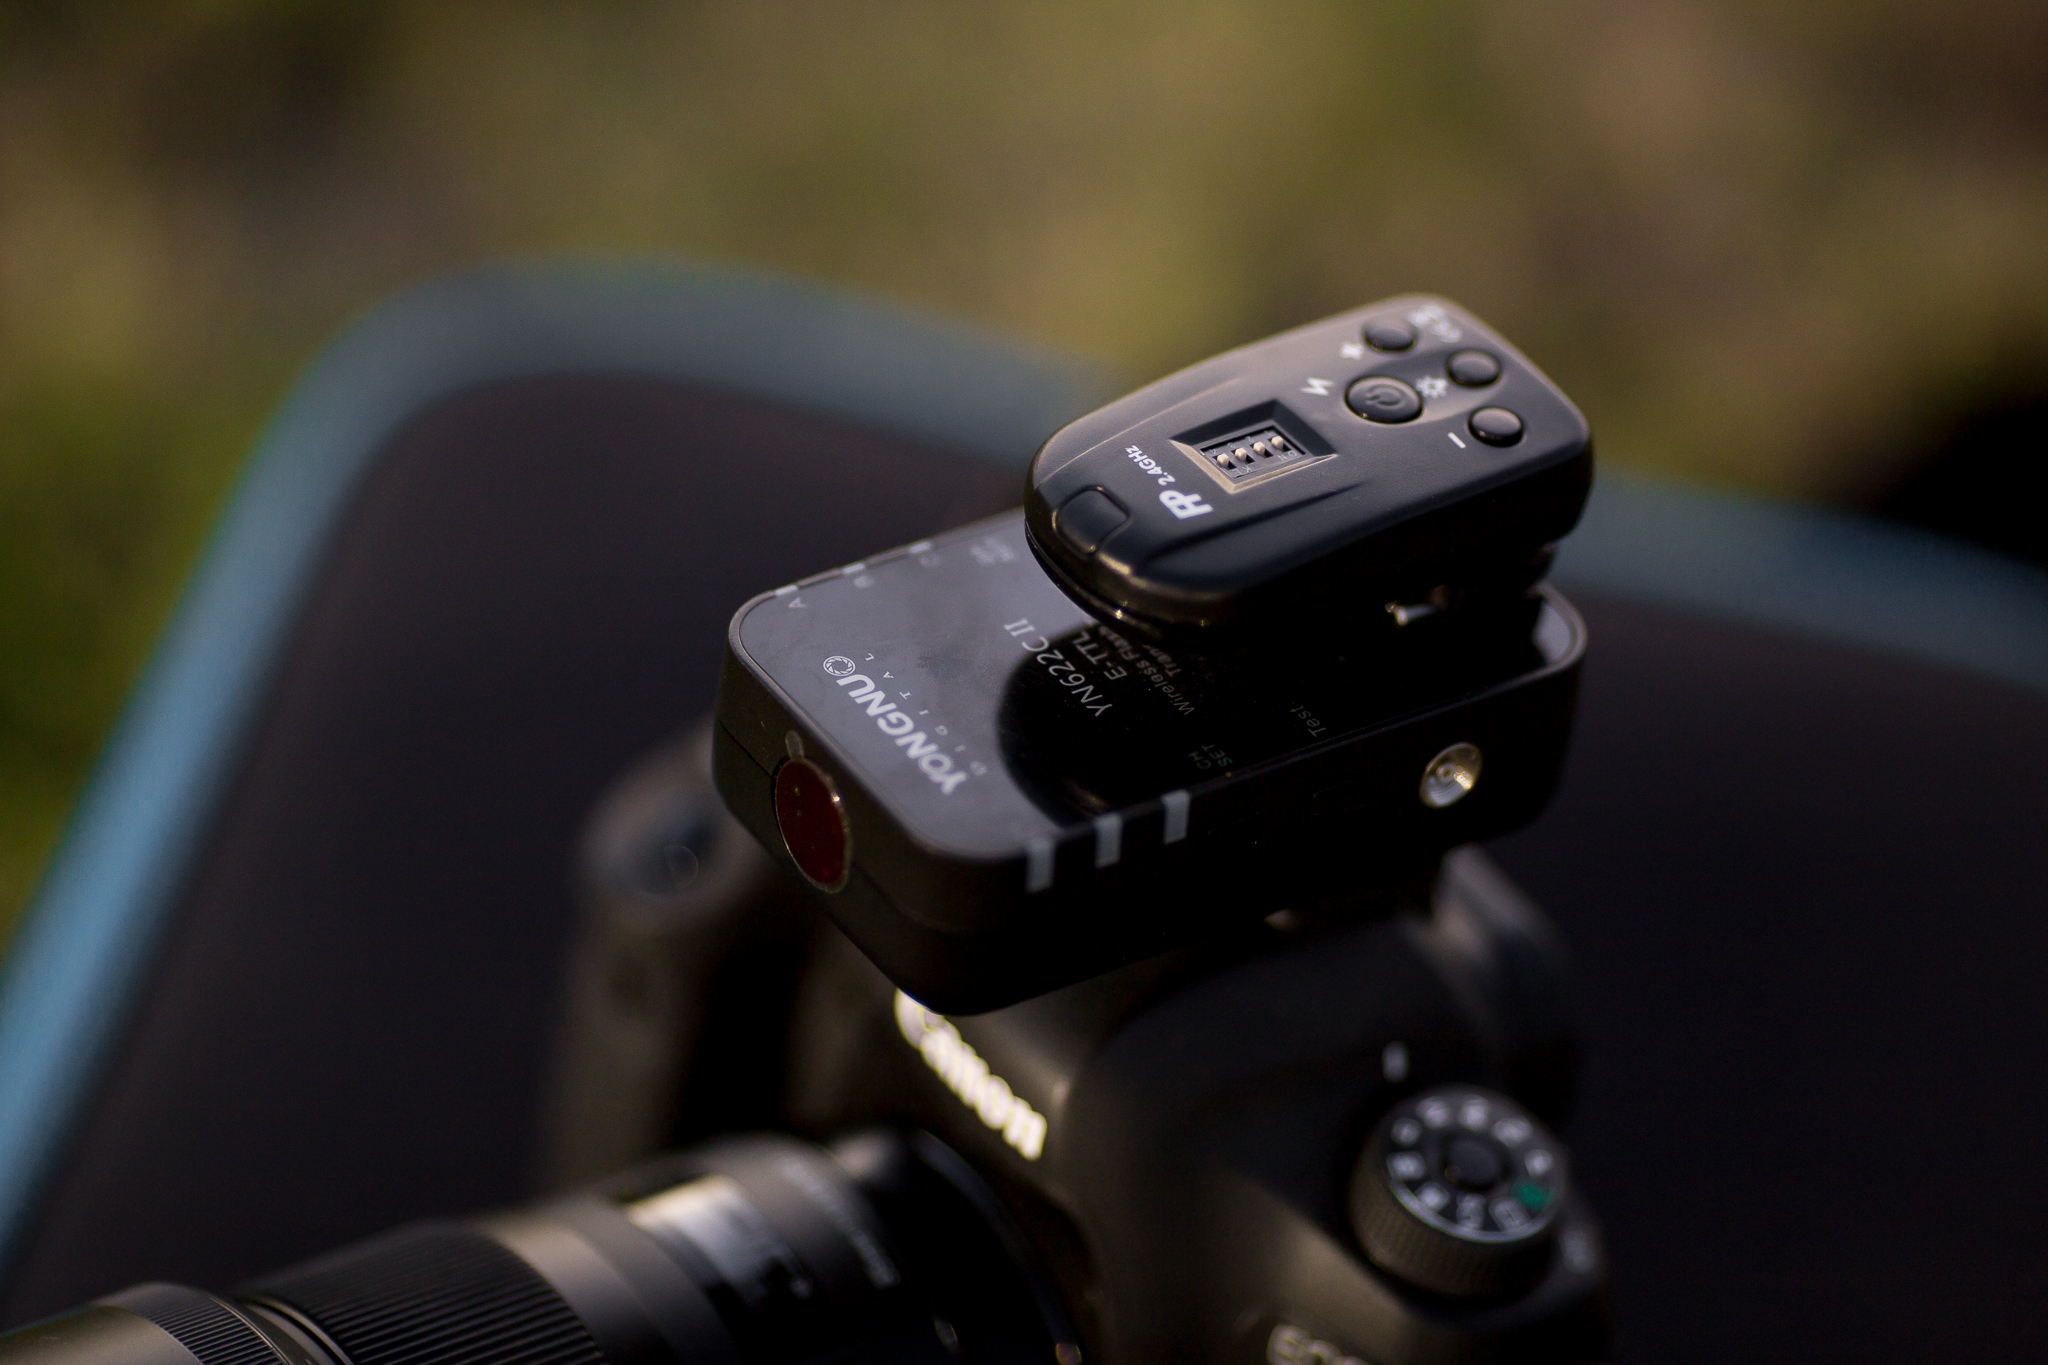 I add the Flashpoint remote on top of the Yongnuo trigger for convenience.